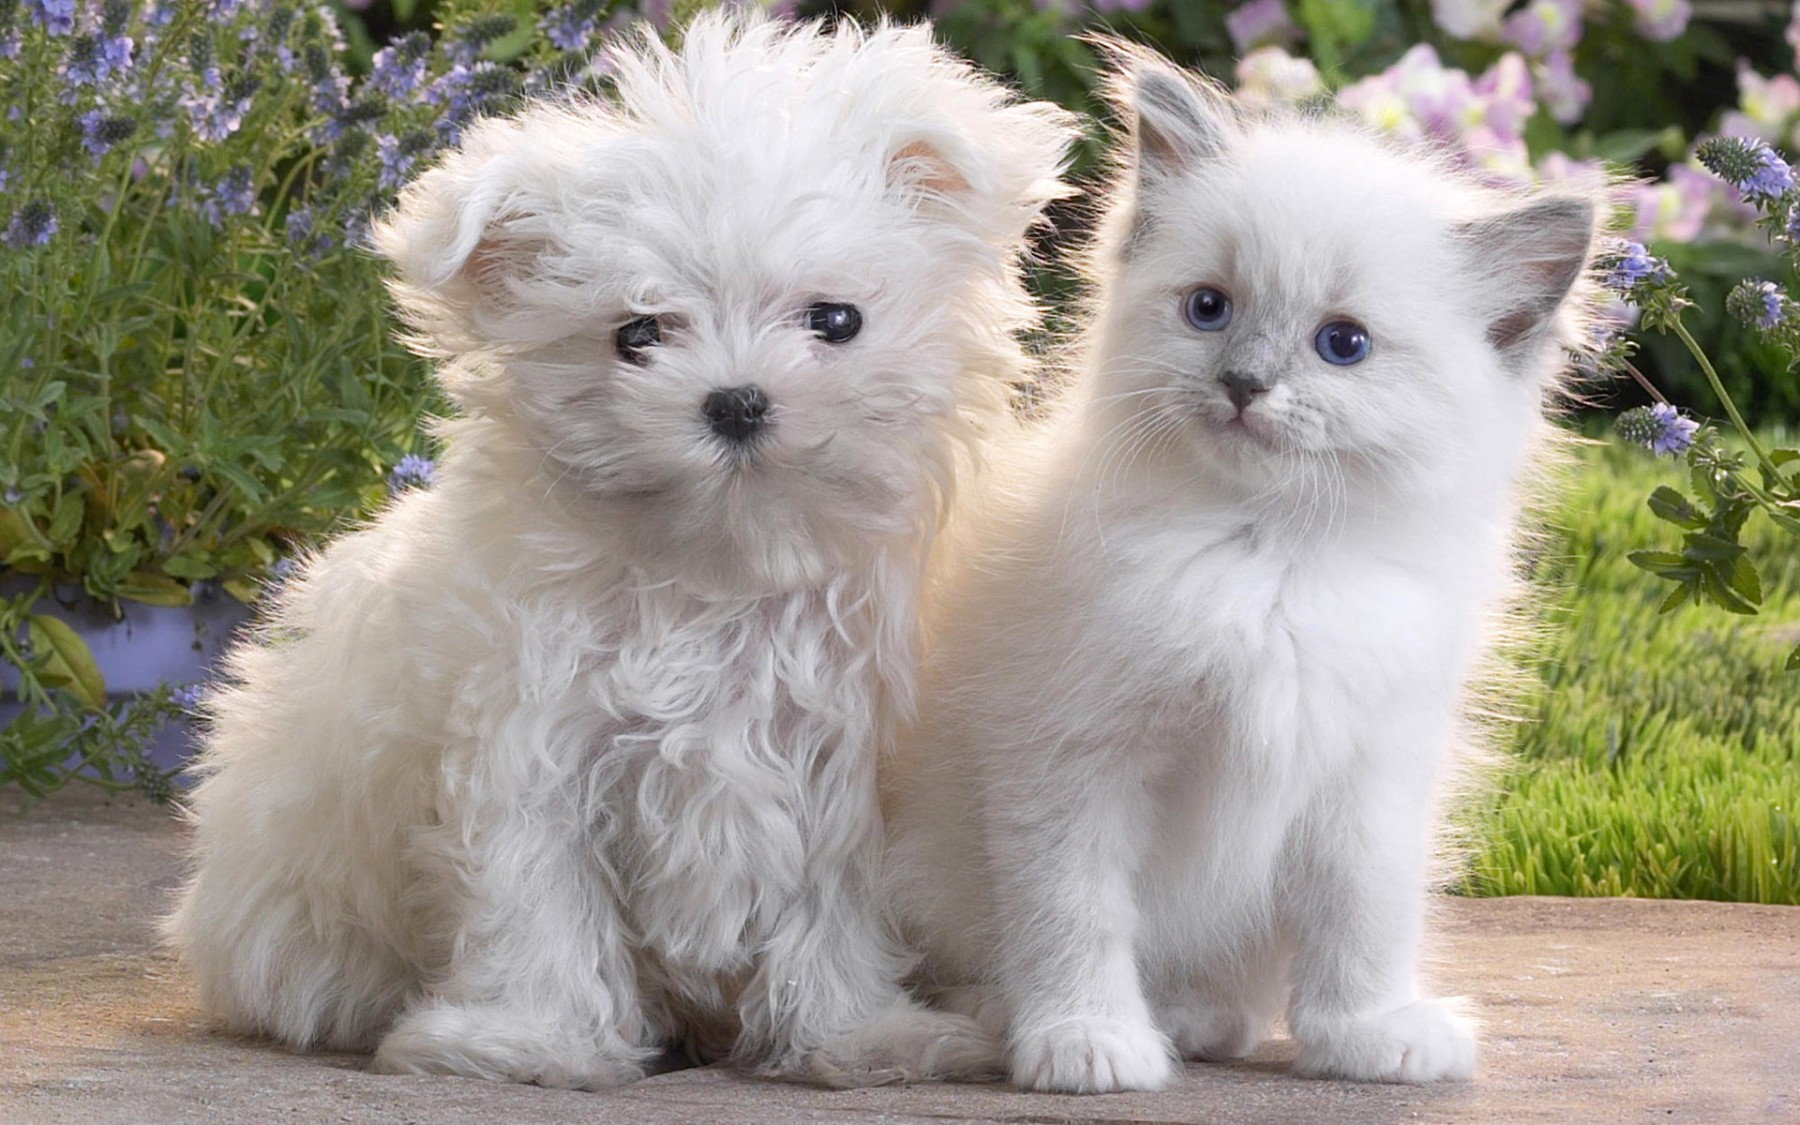 Cute White Puppy and Kitten – Photography Wallpapers